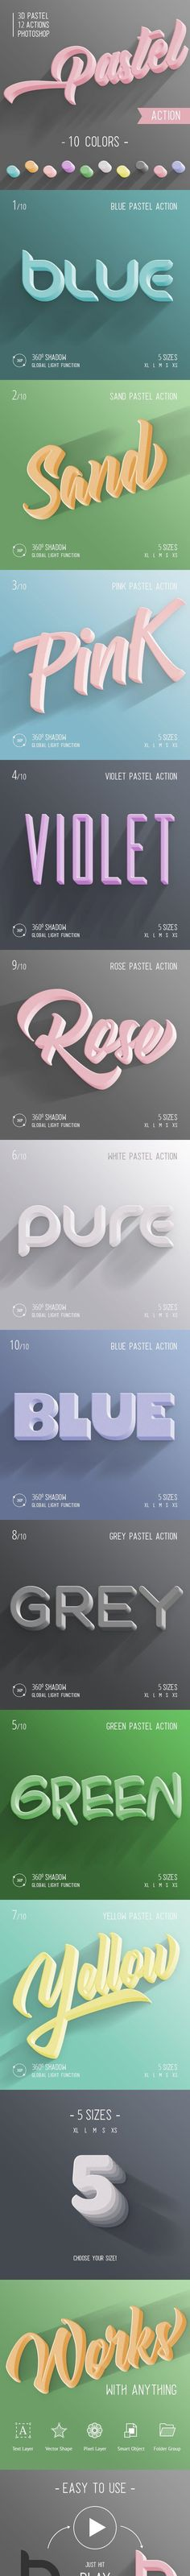 Buy Pastel - Photoshop Action by on GraphicRiver. One click action Photoshop ver. Photoshop Text Effects, Cool Photoshop, Best Photoshop Actions, Photoshop Tips, Photoshop Design, Photoshop Tutorial, Photoshop For Photographers, Photoshop Photography, Adobe Illustrator Tutorials